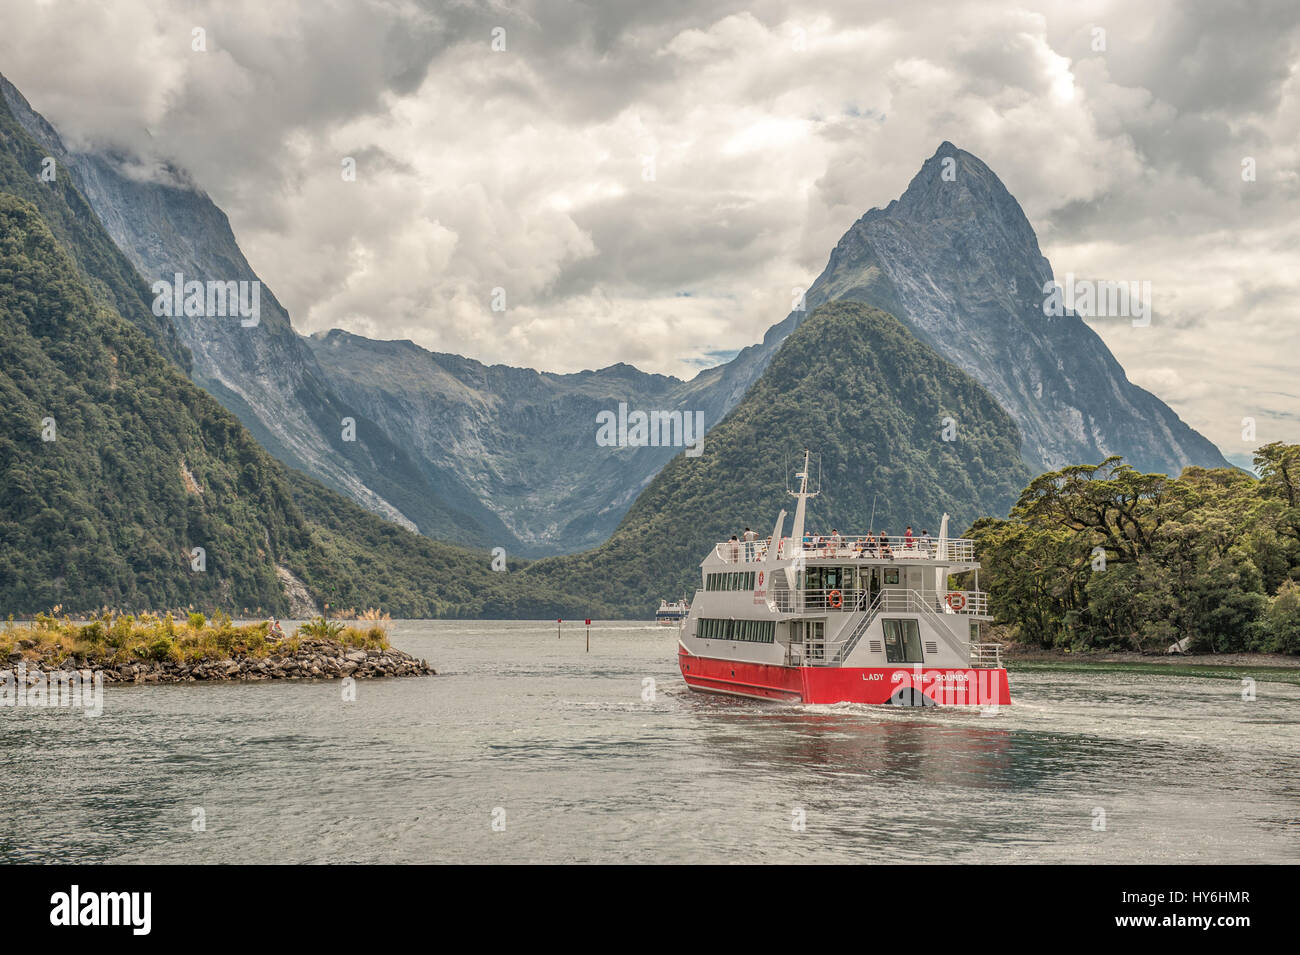 Tour boat cruising in Milford sound, Fiordlands National Park, New Zealand - Stock Image